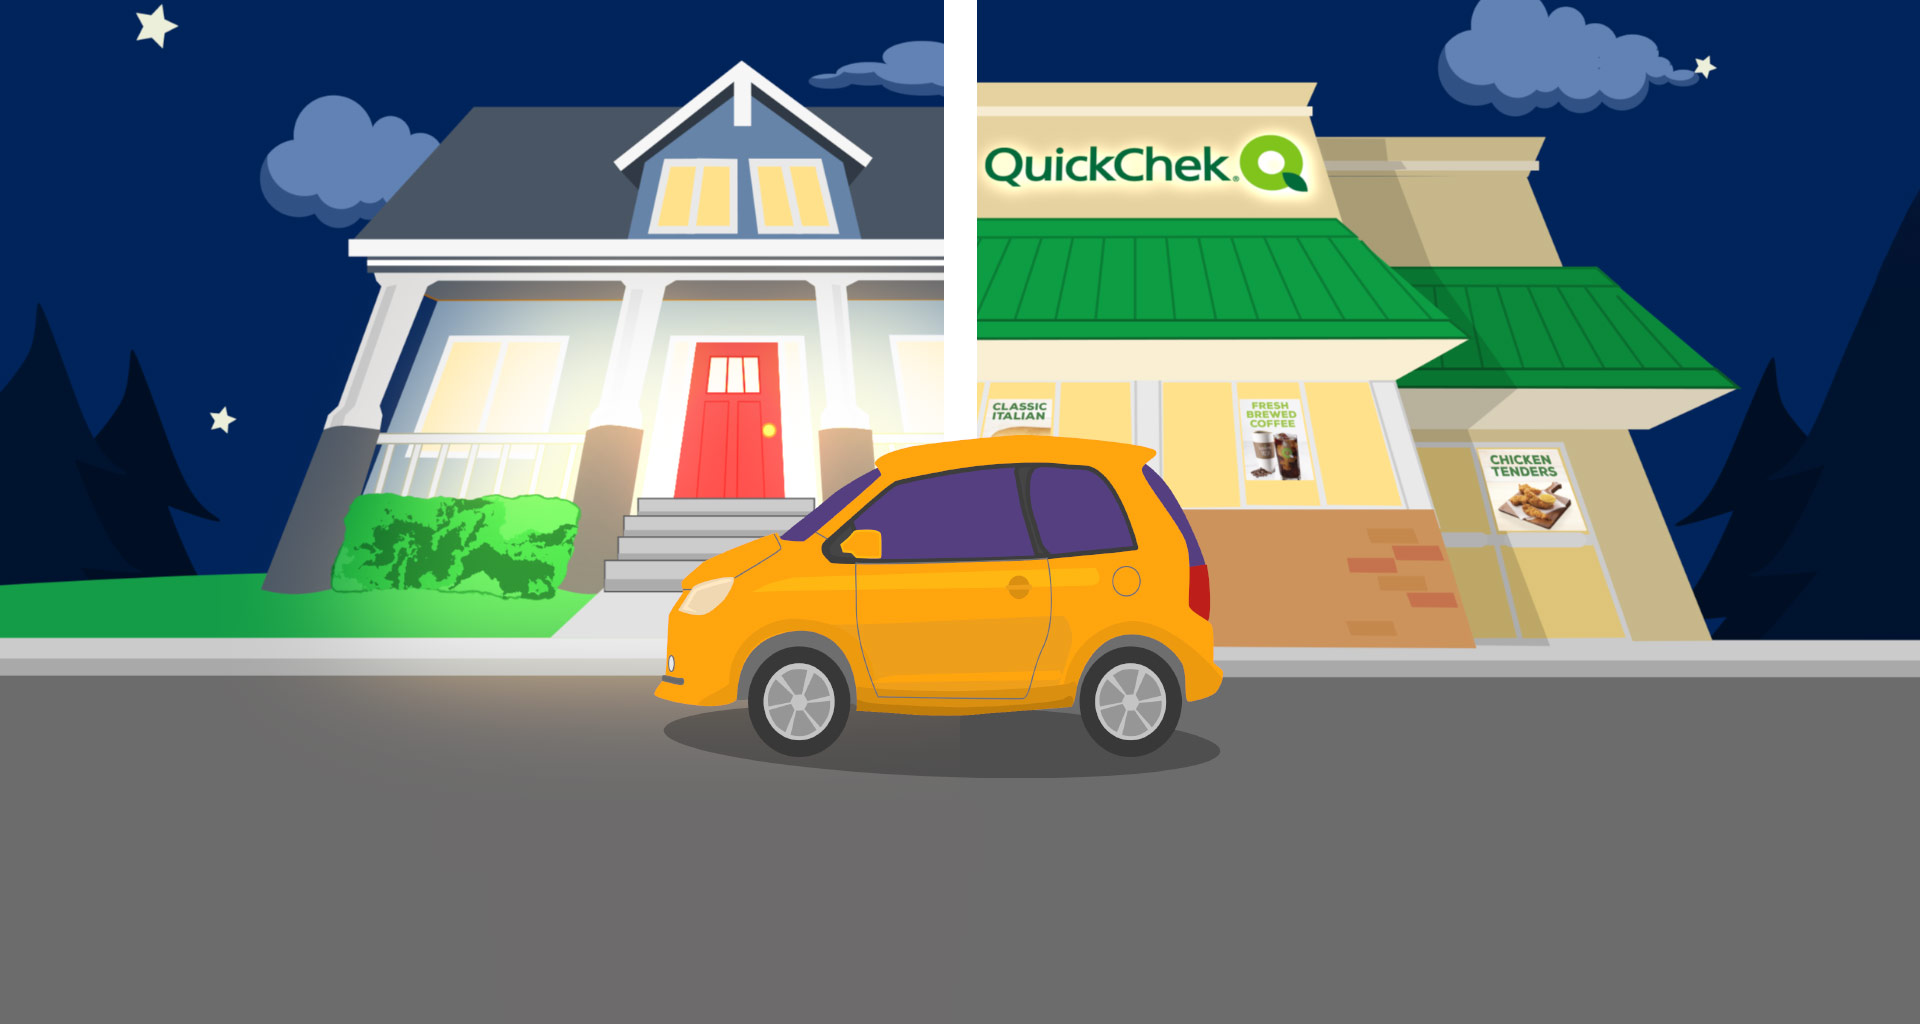 Marketing Campaign for QuickChek